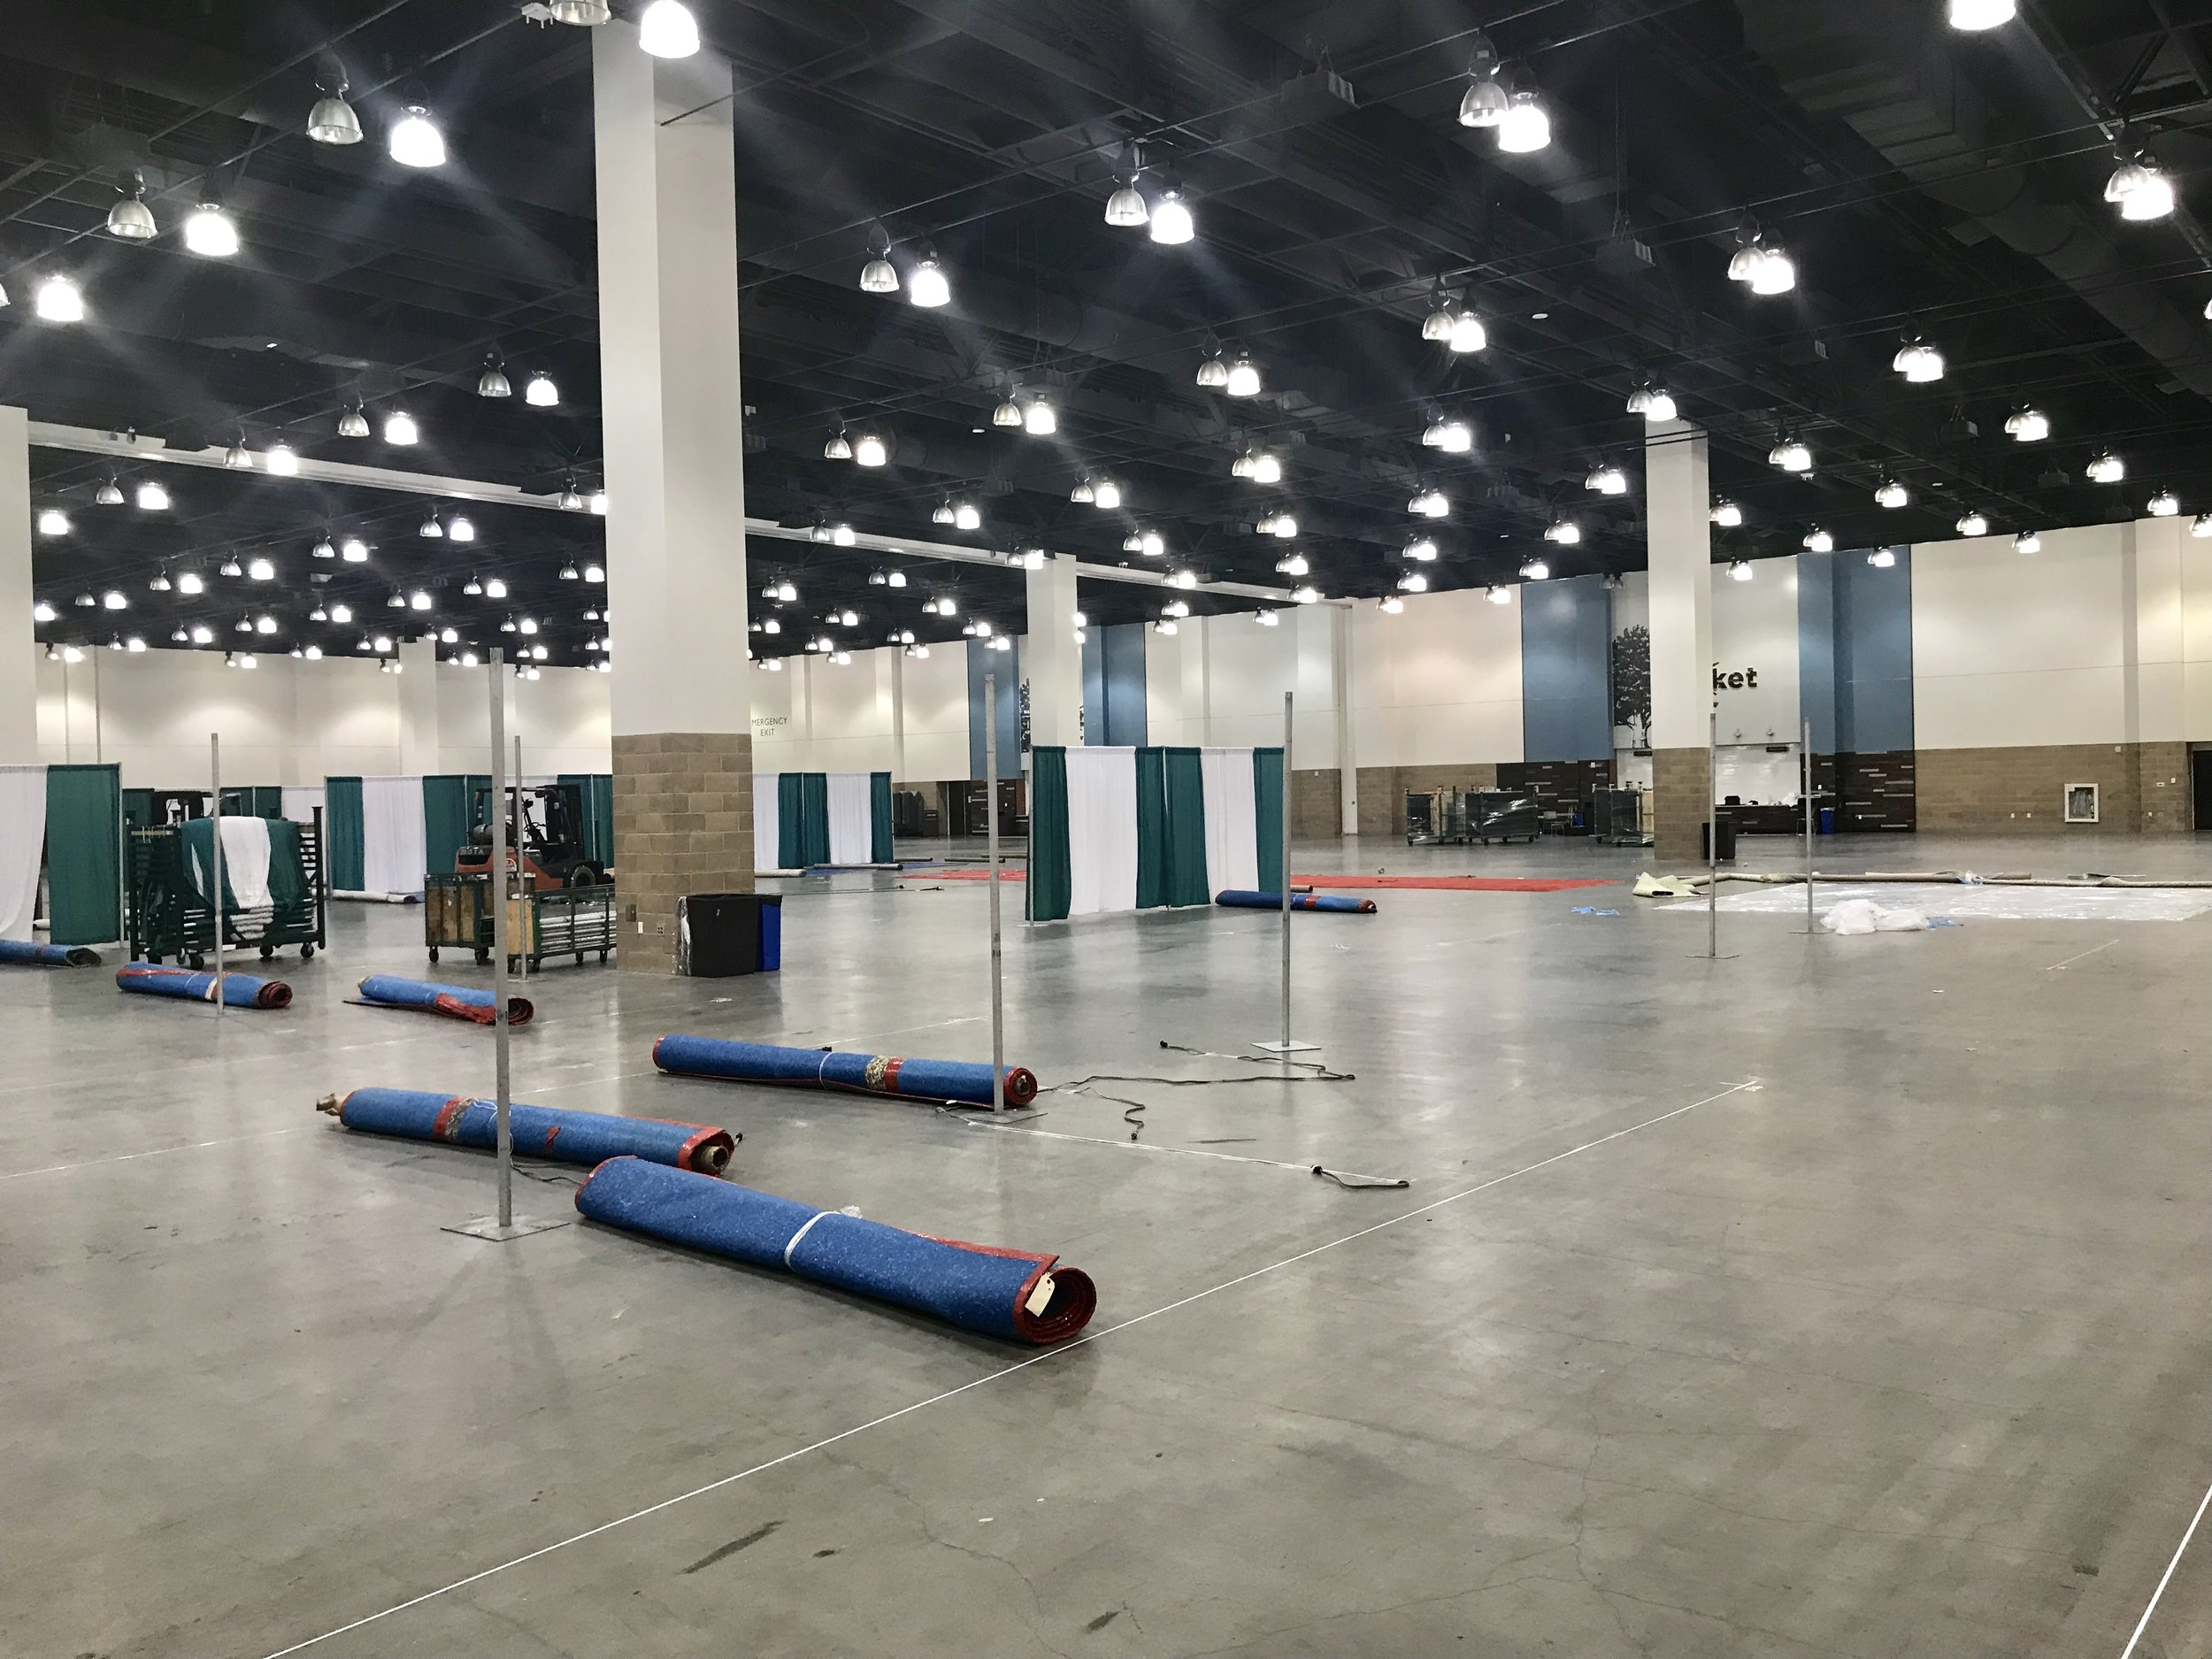 Total Event space is over 100,000 square feet to include 2 Exhibit Halls.